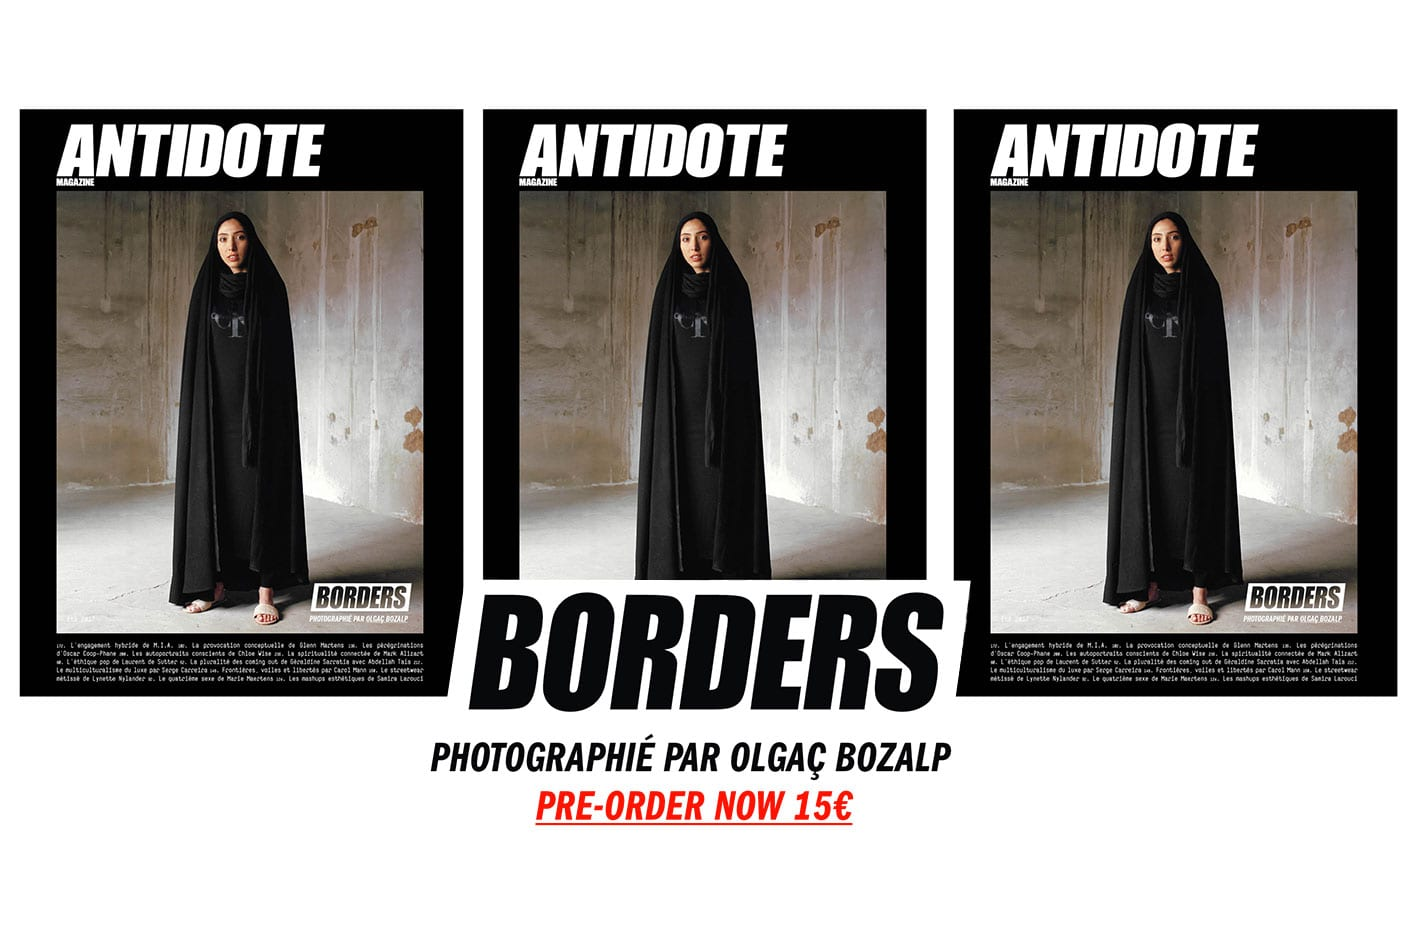 borders-antidote-web